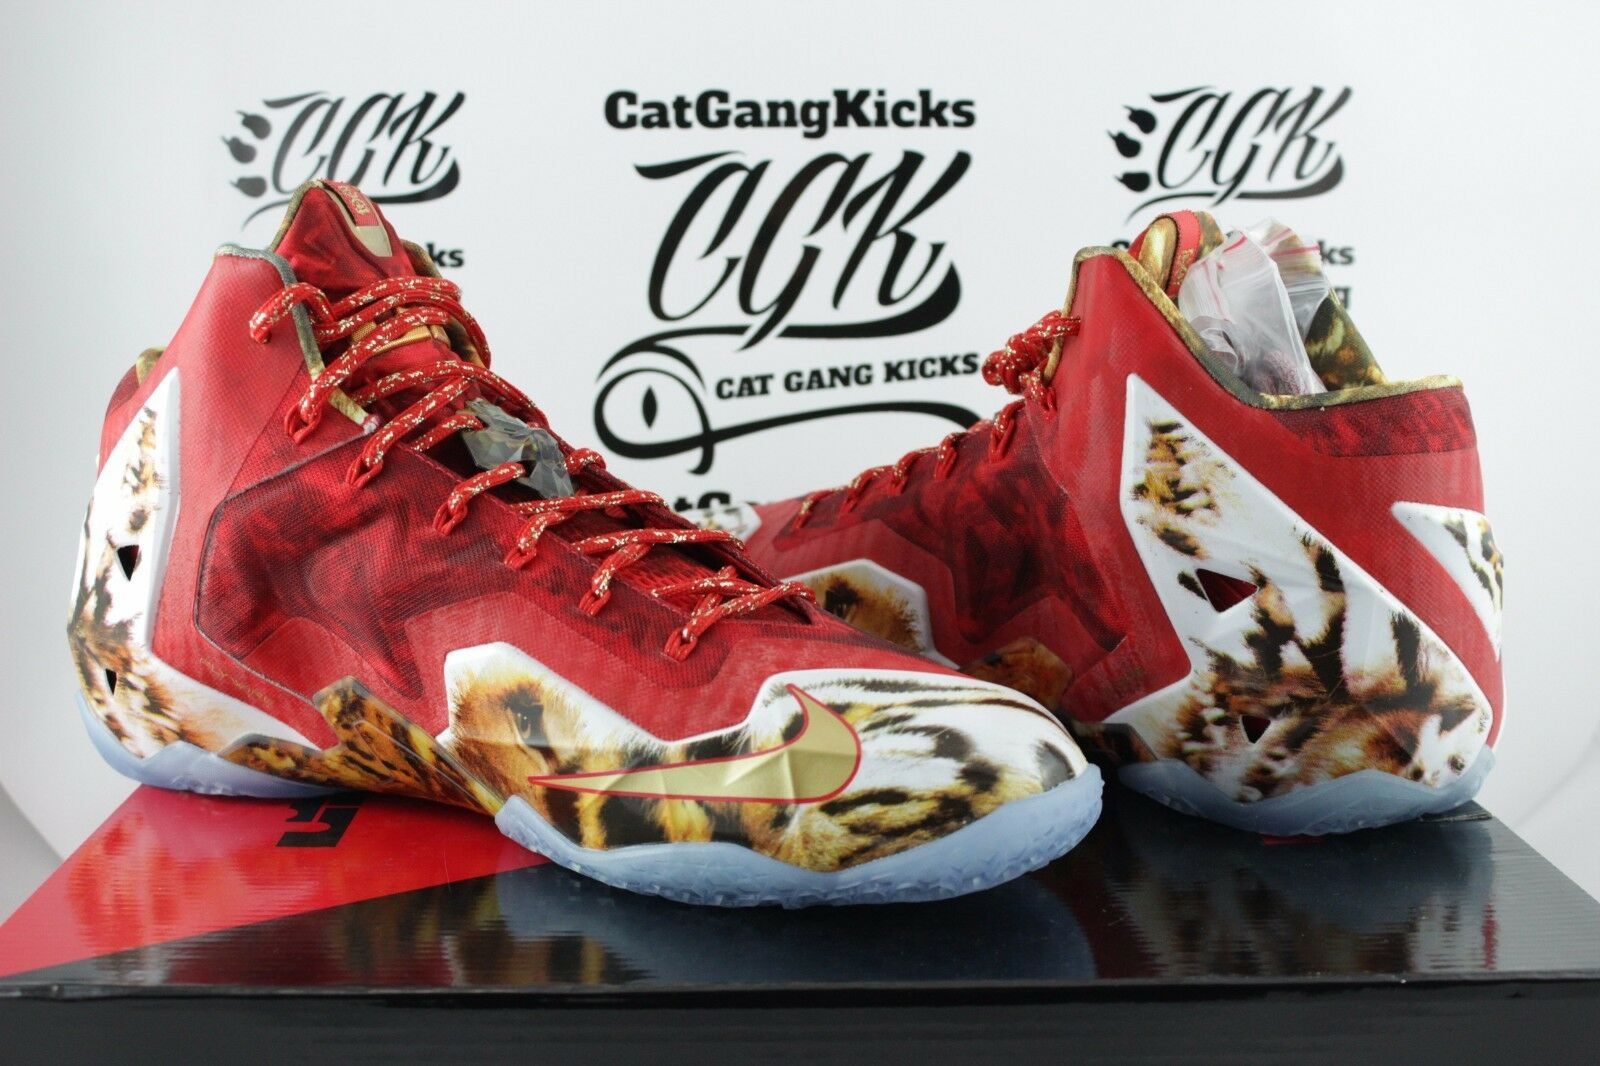 Ds nike lebron xi nba 2k14 limited edition 650884-674 2014 paare 650884-674 edition james. 729a8c